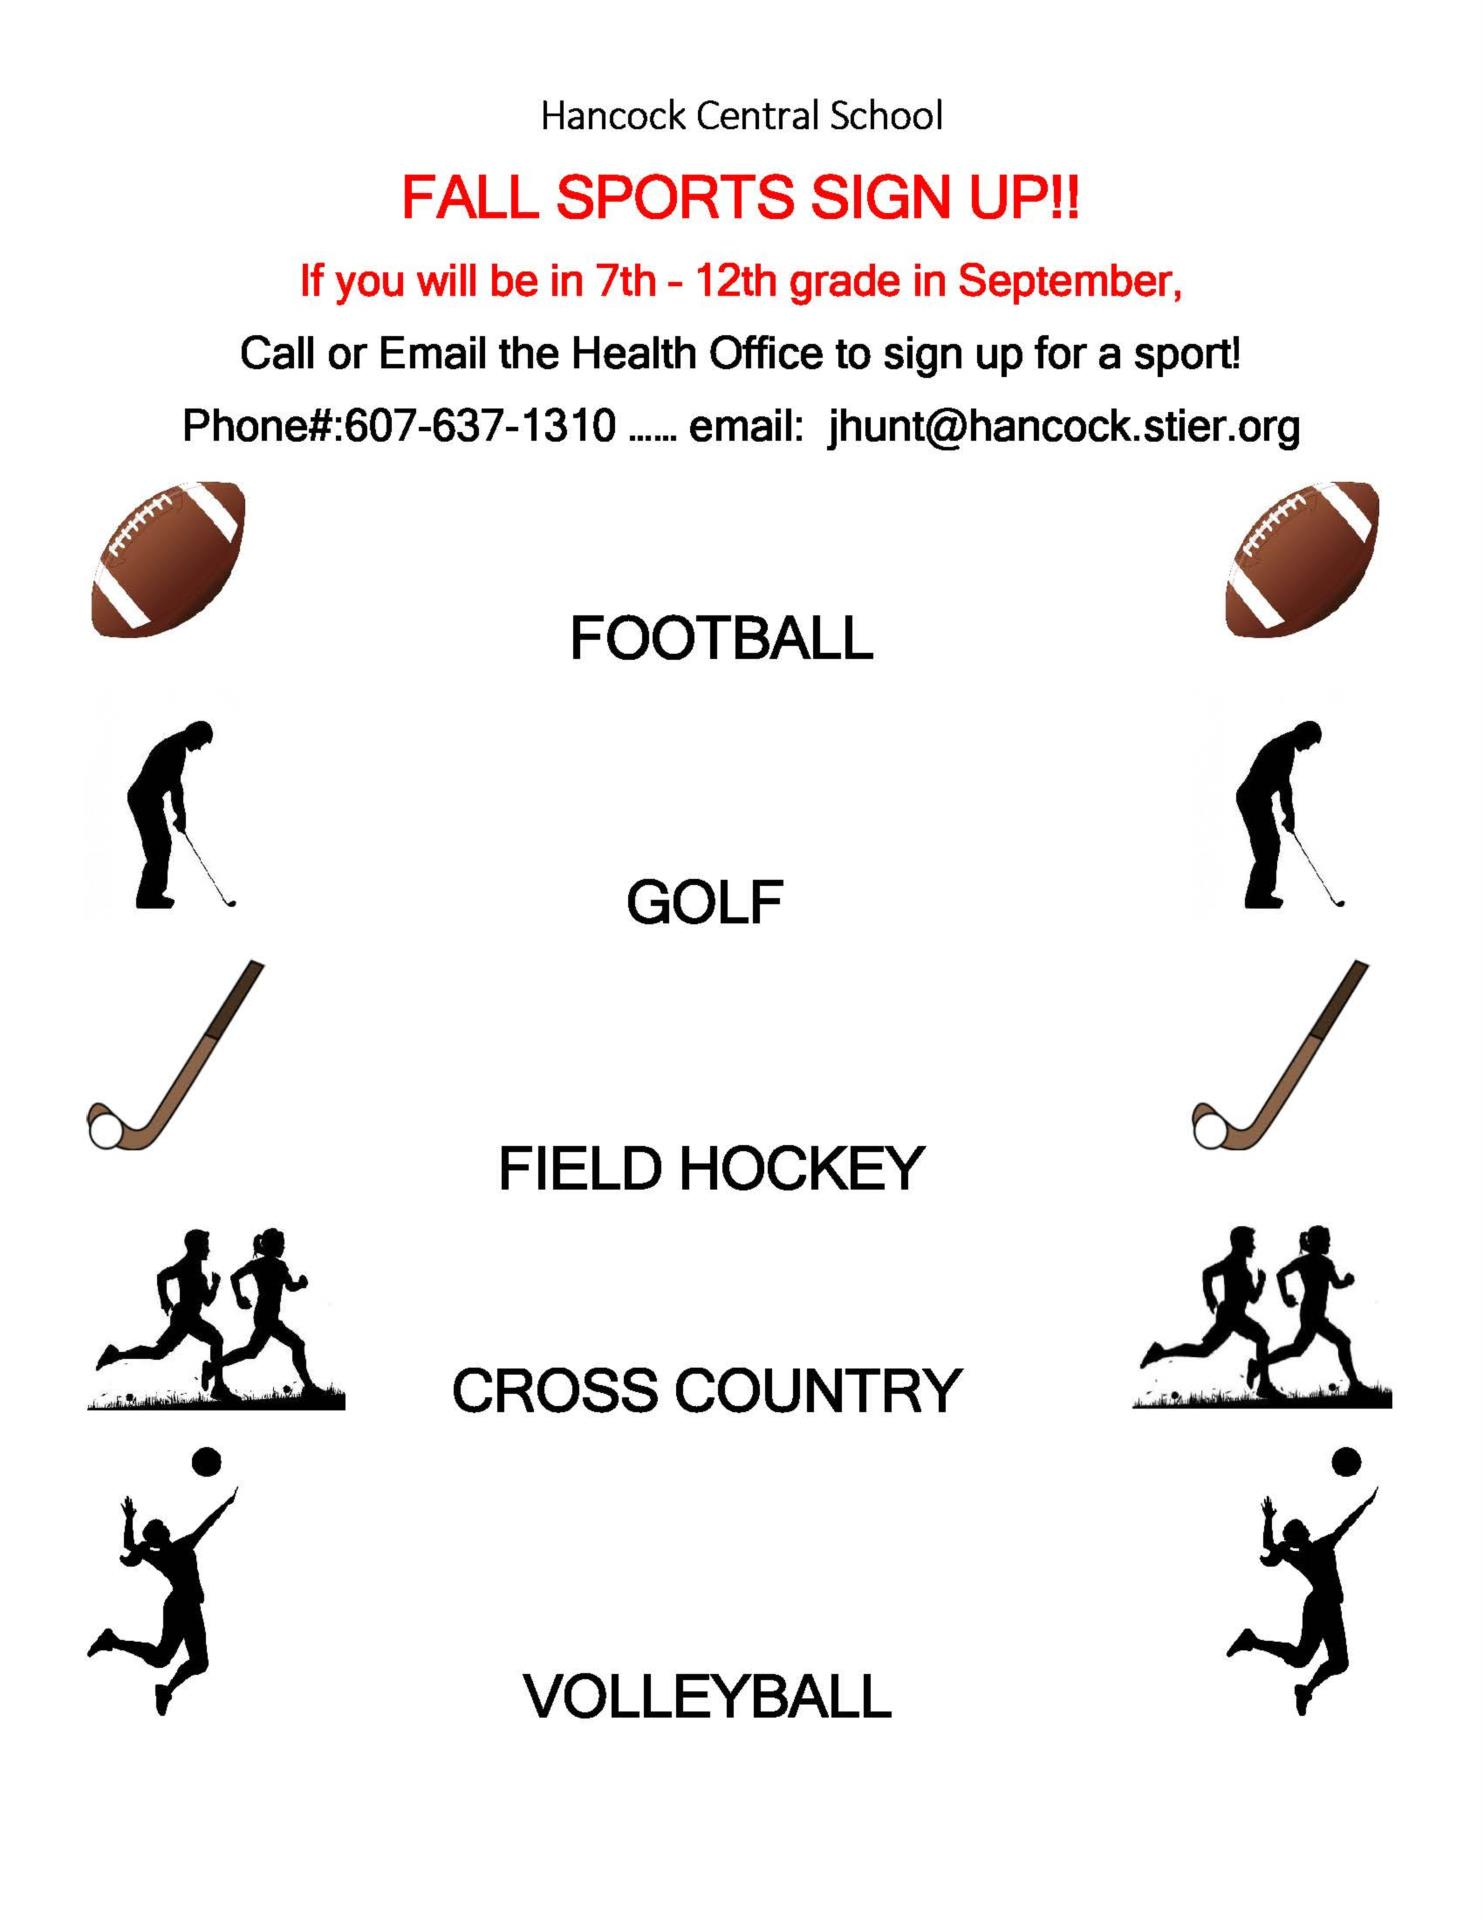 Fall Sports Signup Flyer